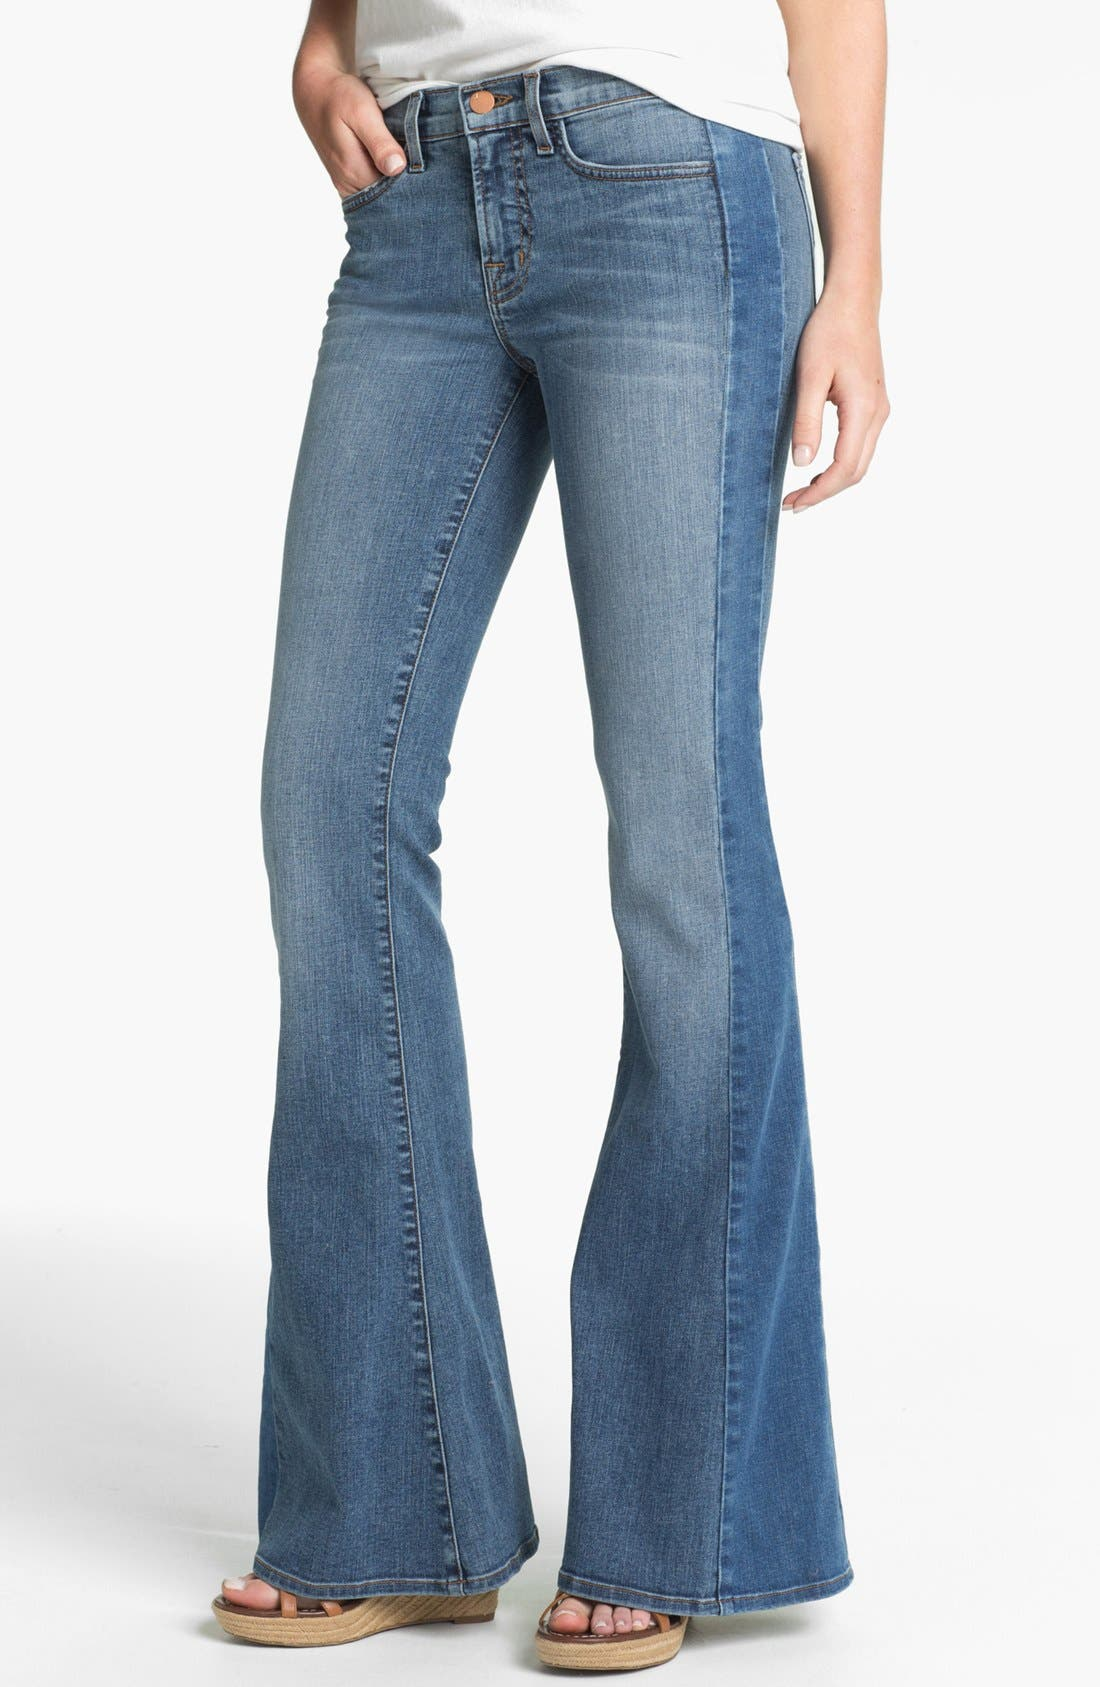 Alternate Image 1 Selected - J Brand 'Chrissy' Flare Leg Jeans (Bliss)